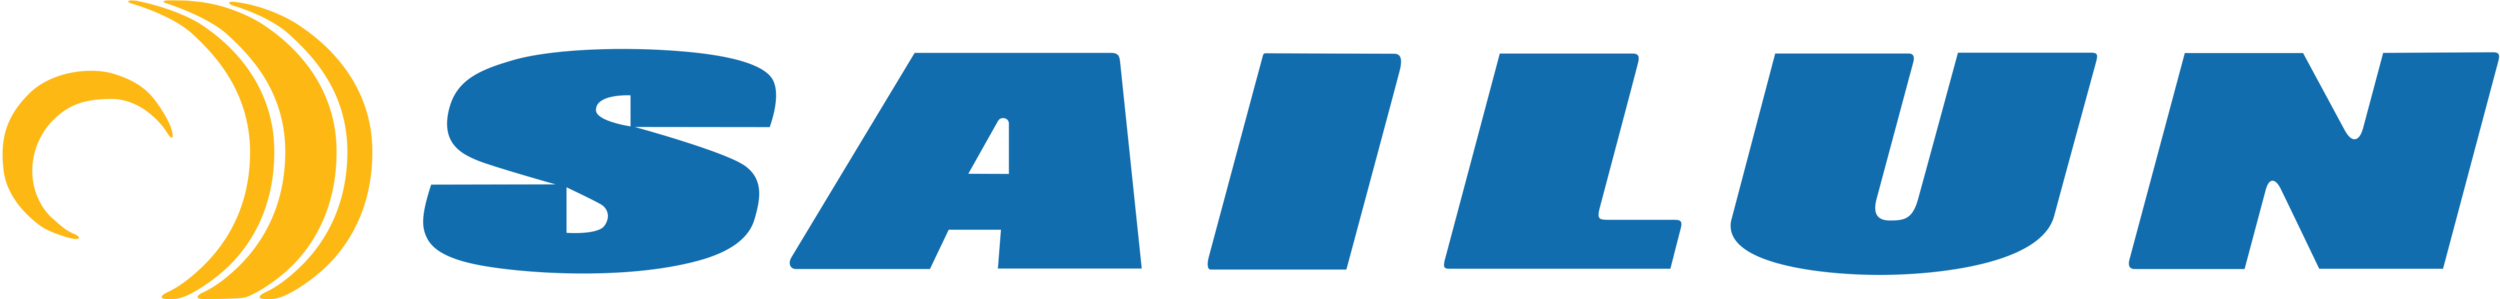 SailunTire-logo.png